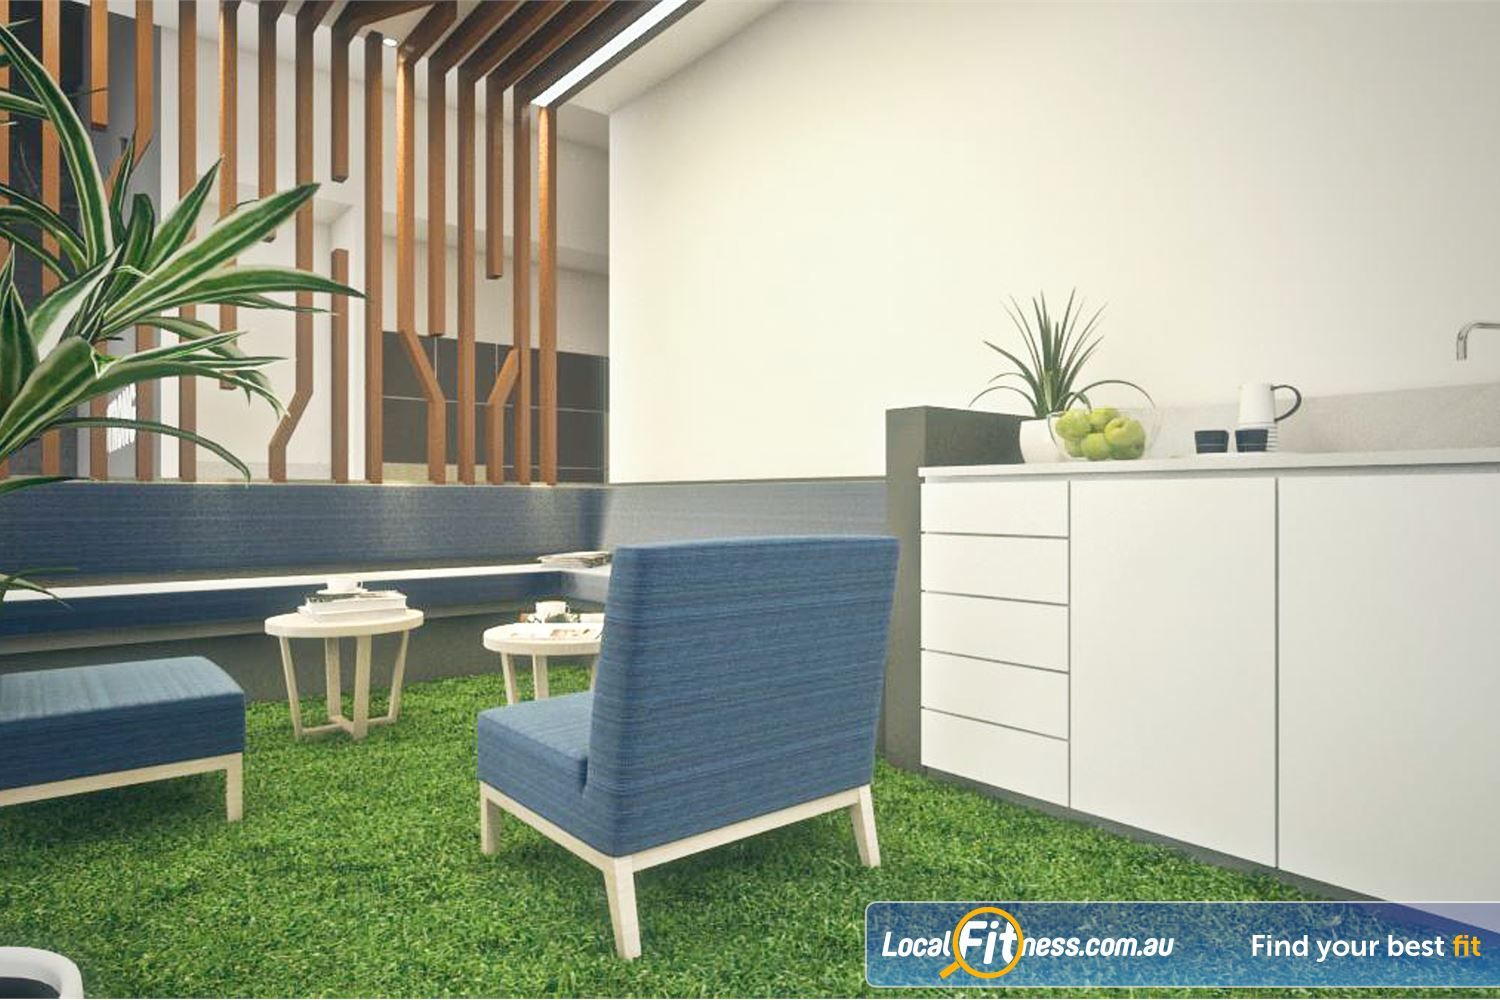 Goodlife Health Clubs Near Yangebup Comfortable lounges and a chill out area for members and guests.